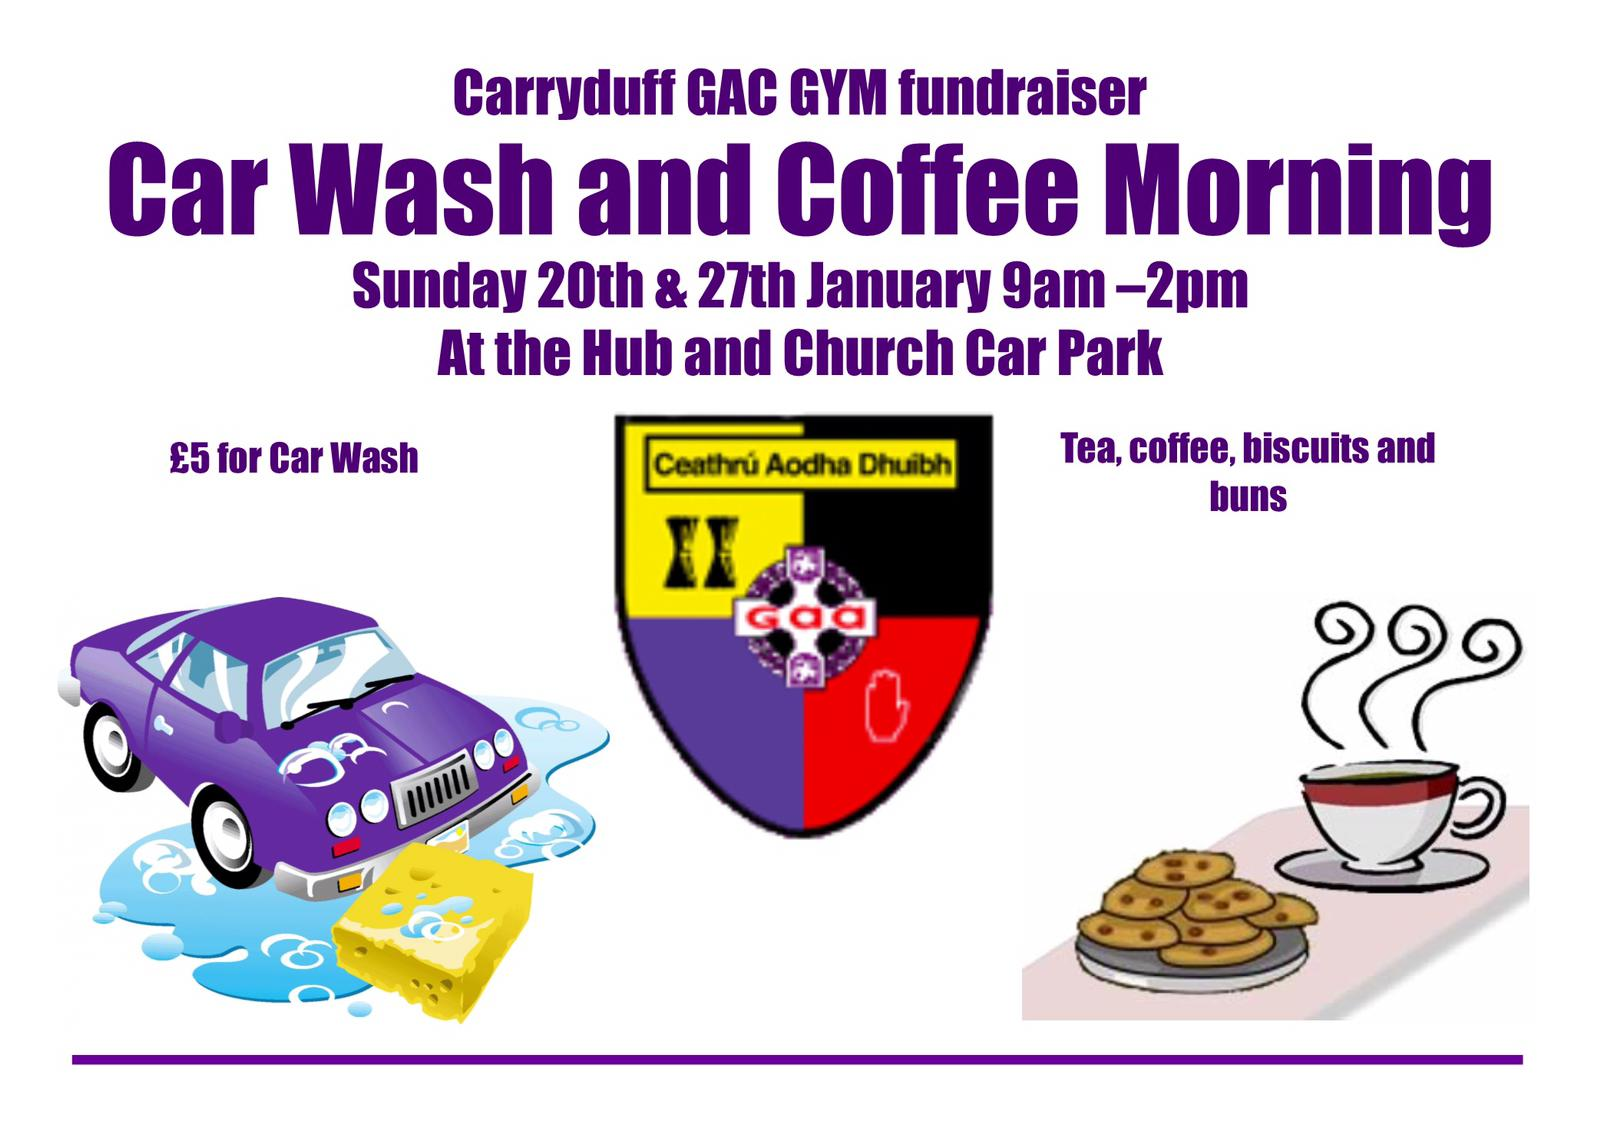 Car wash & Coffee morning